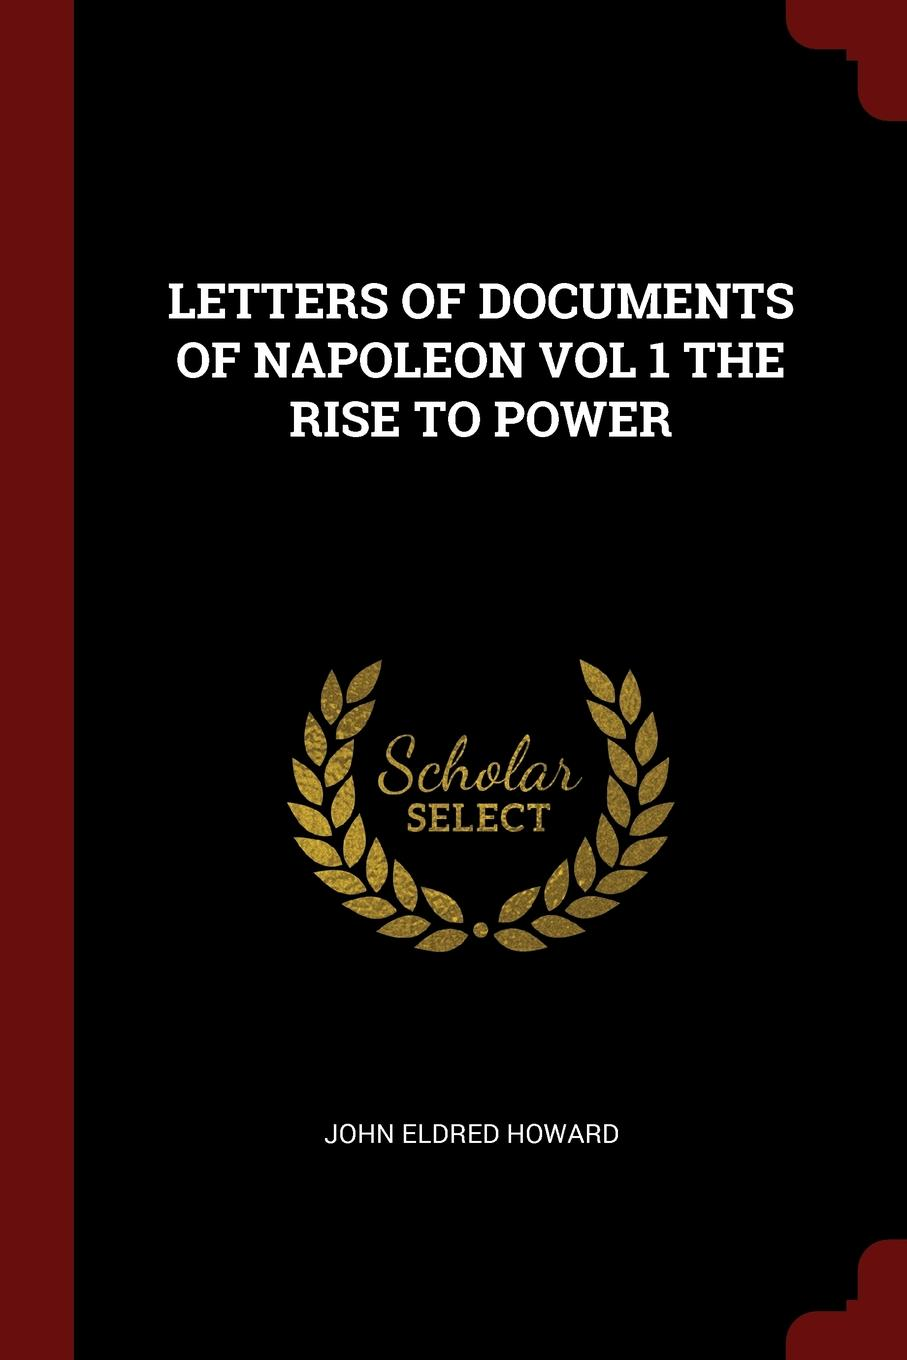 LETTERS OF DOCUMENTS OF NAPOLEON VOL 1 THE RISE TO POWER